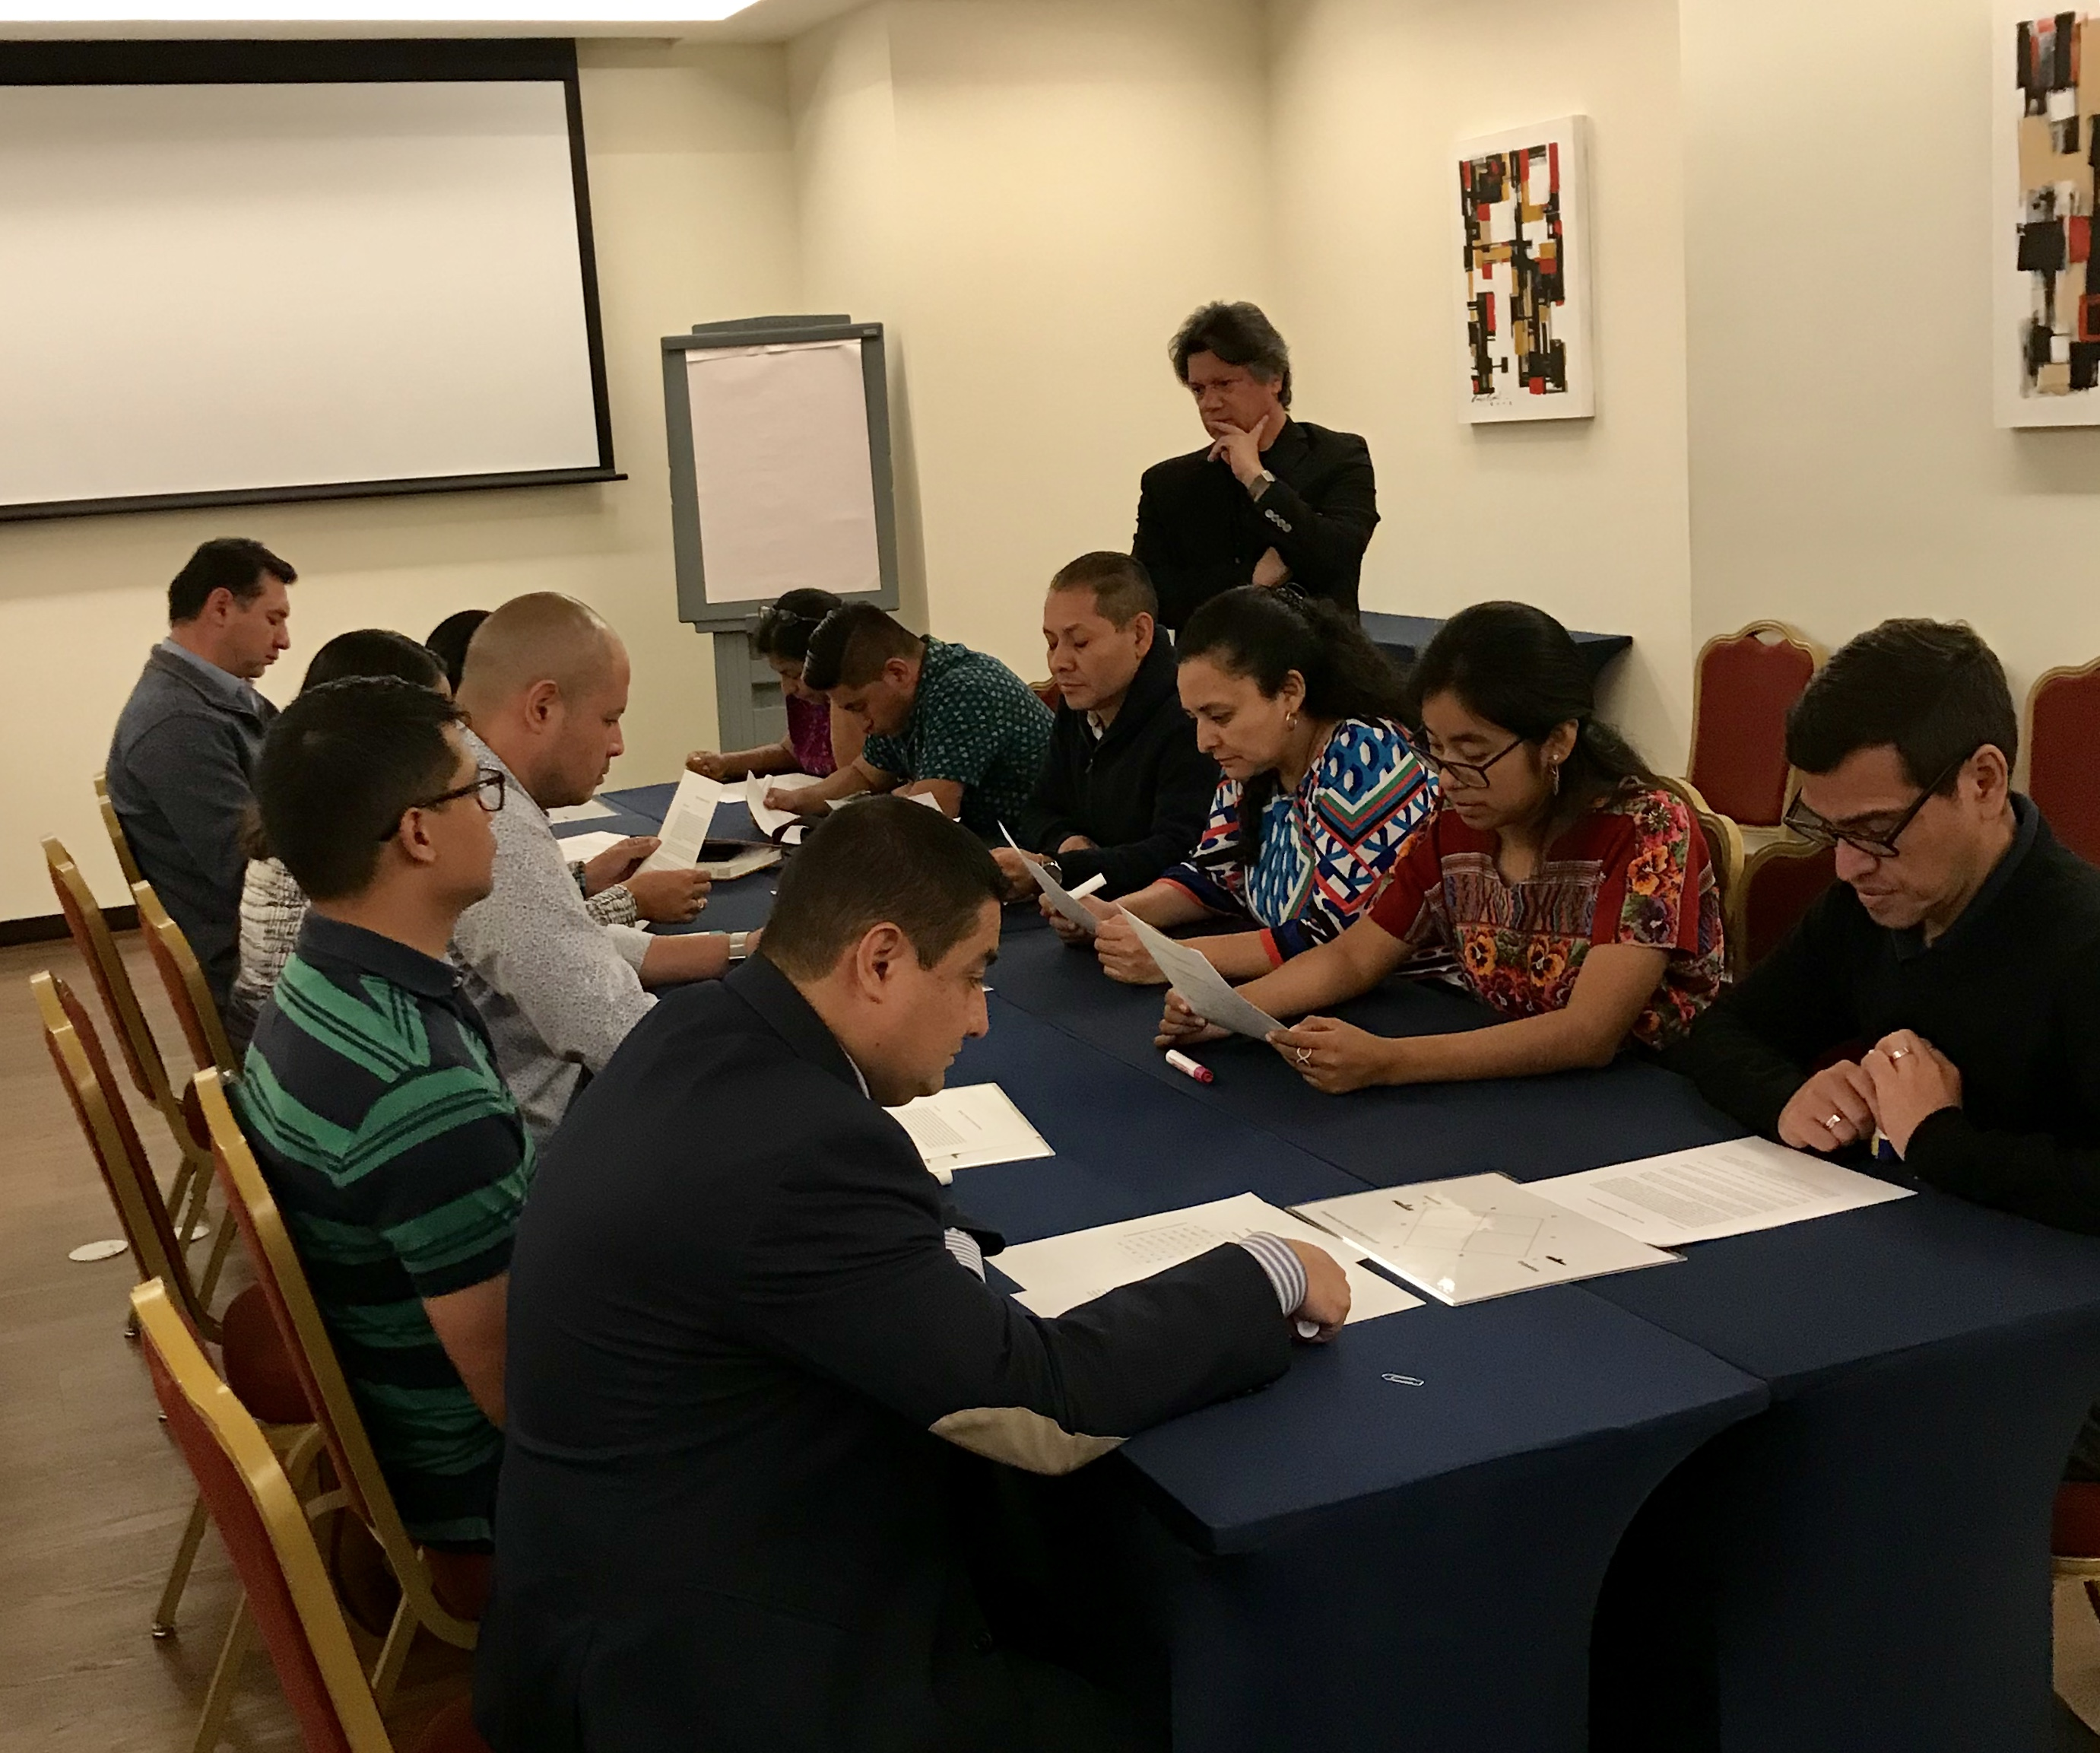 CAA conducts workshops in Honduras, Guatemala and El Salvador